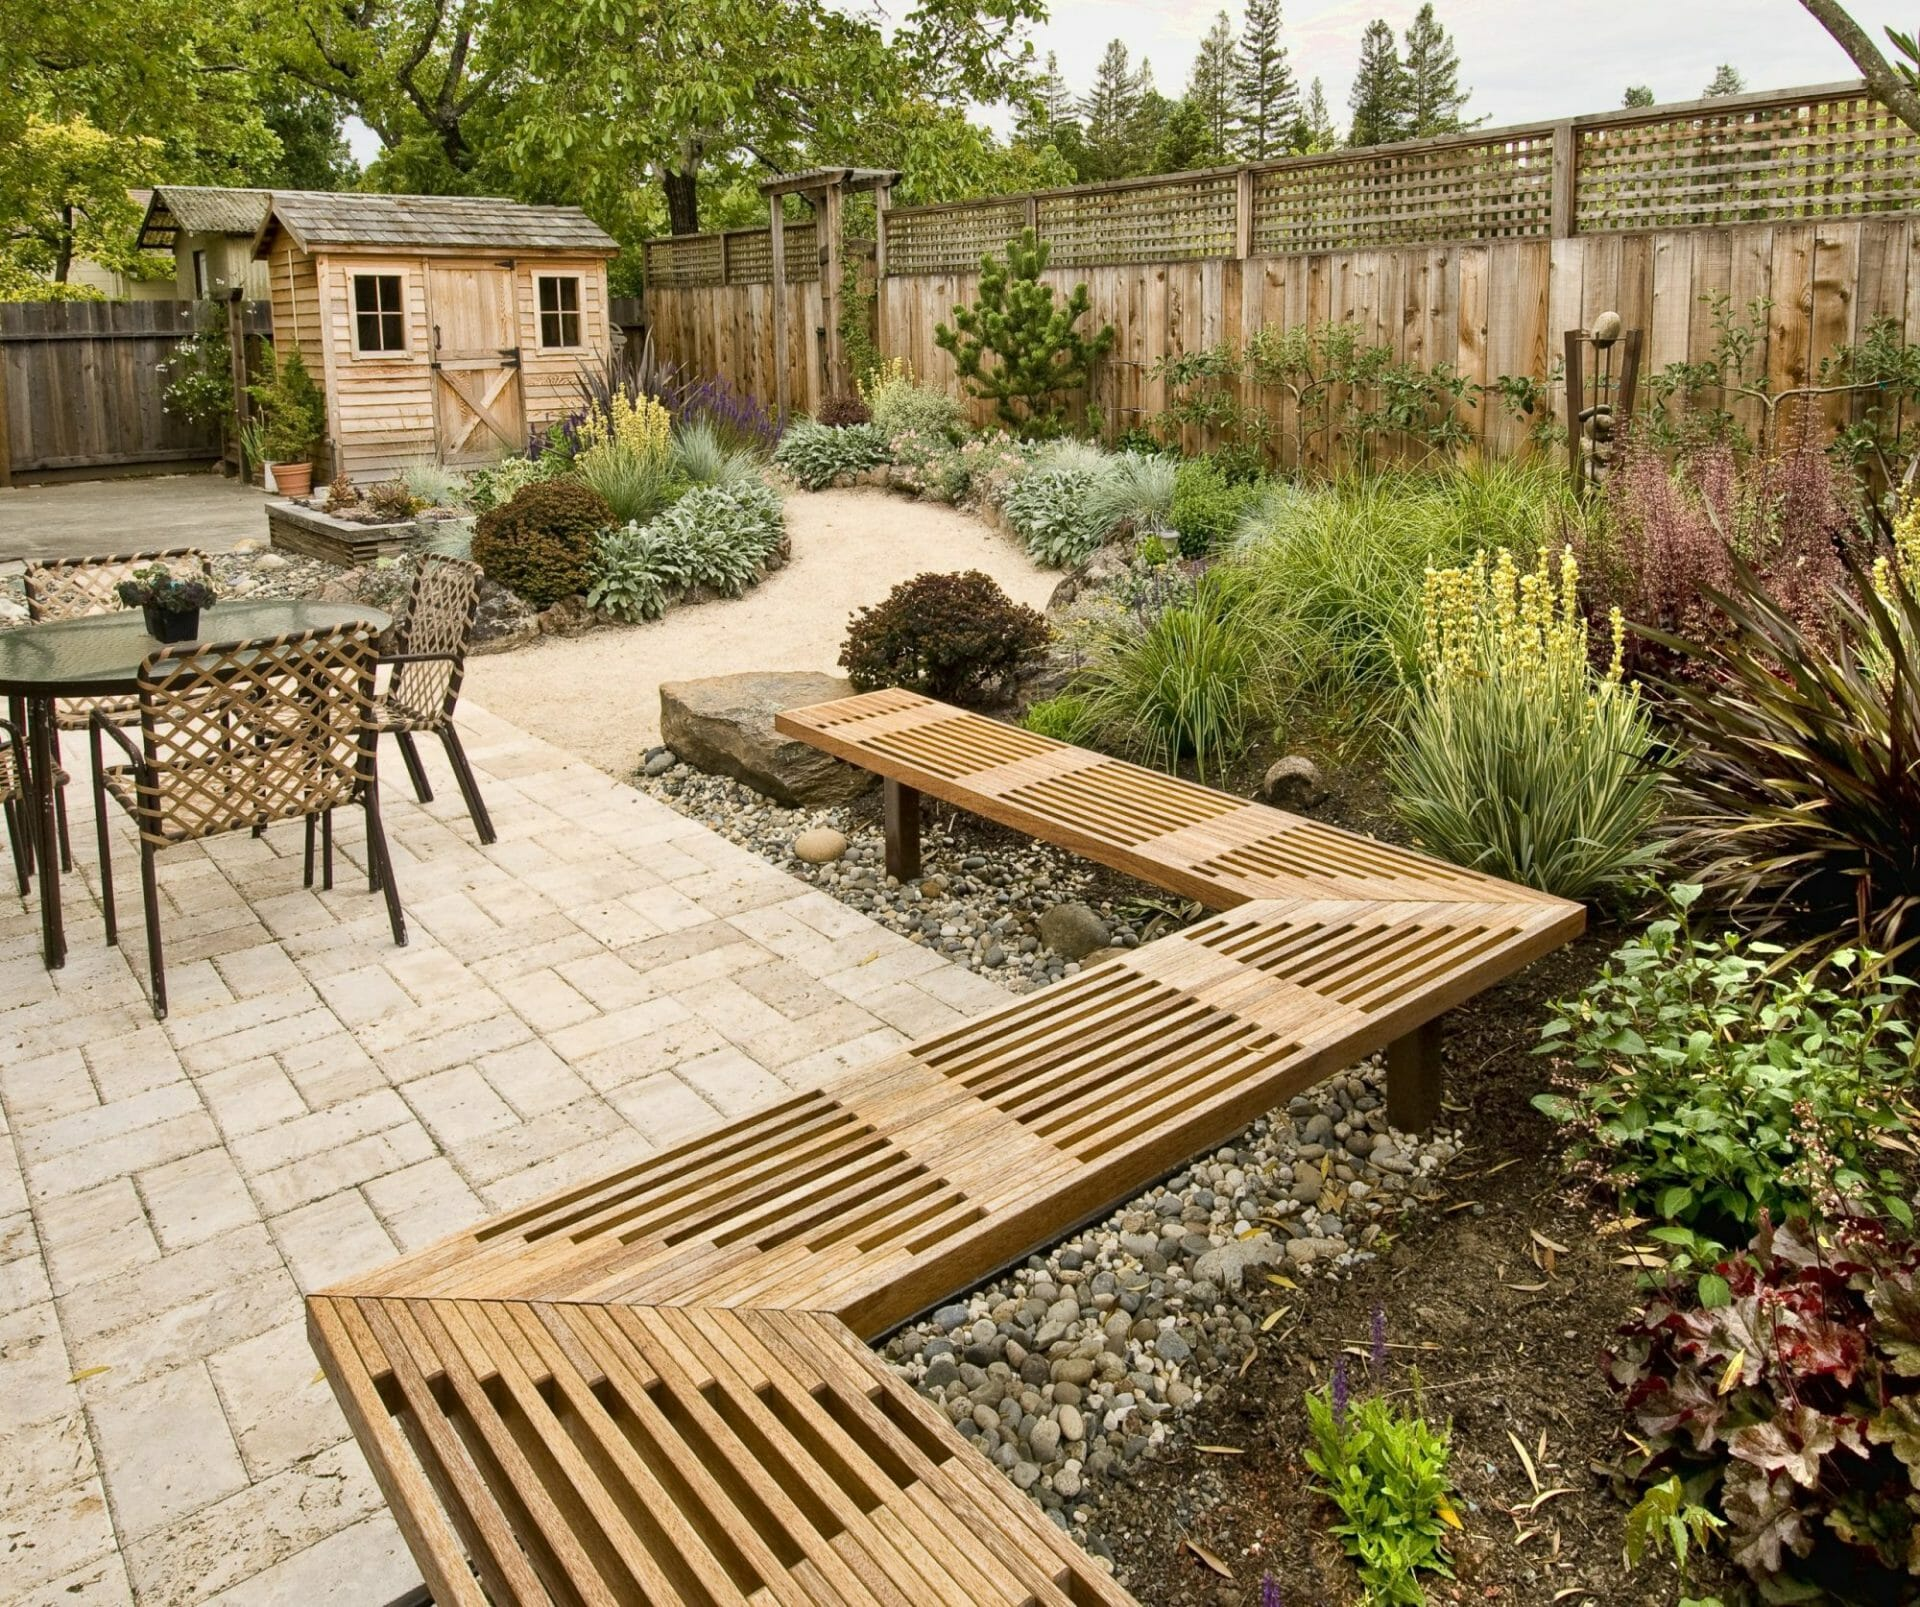 Backyard Landscape with Rock beds under seating